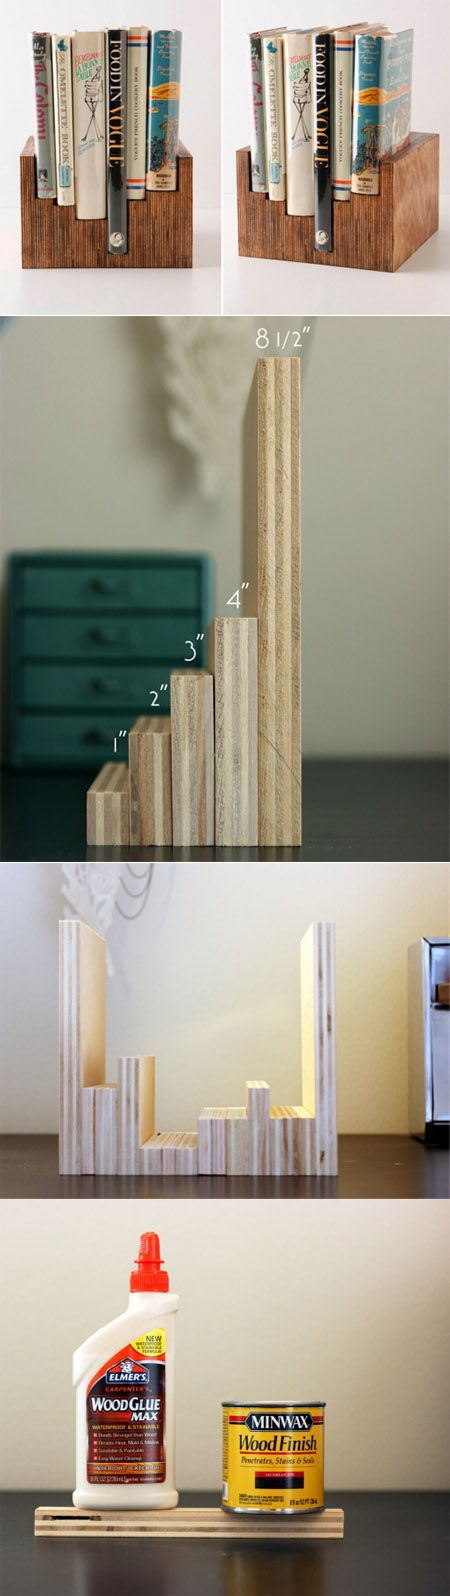 1000 images about diy on pinterest